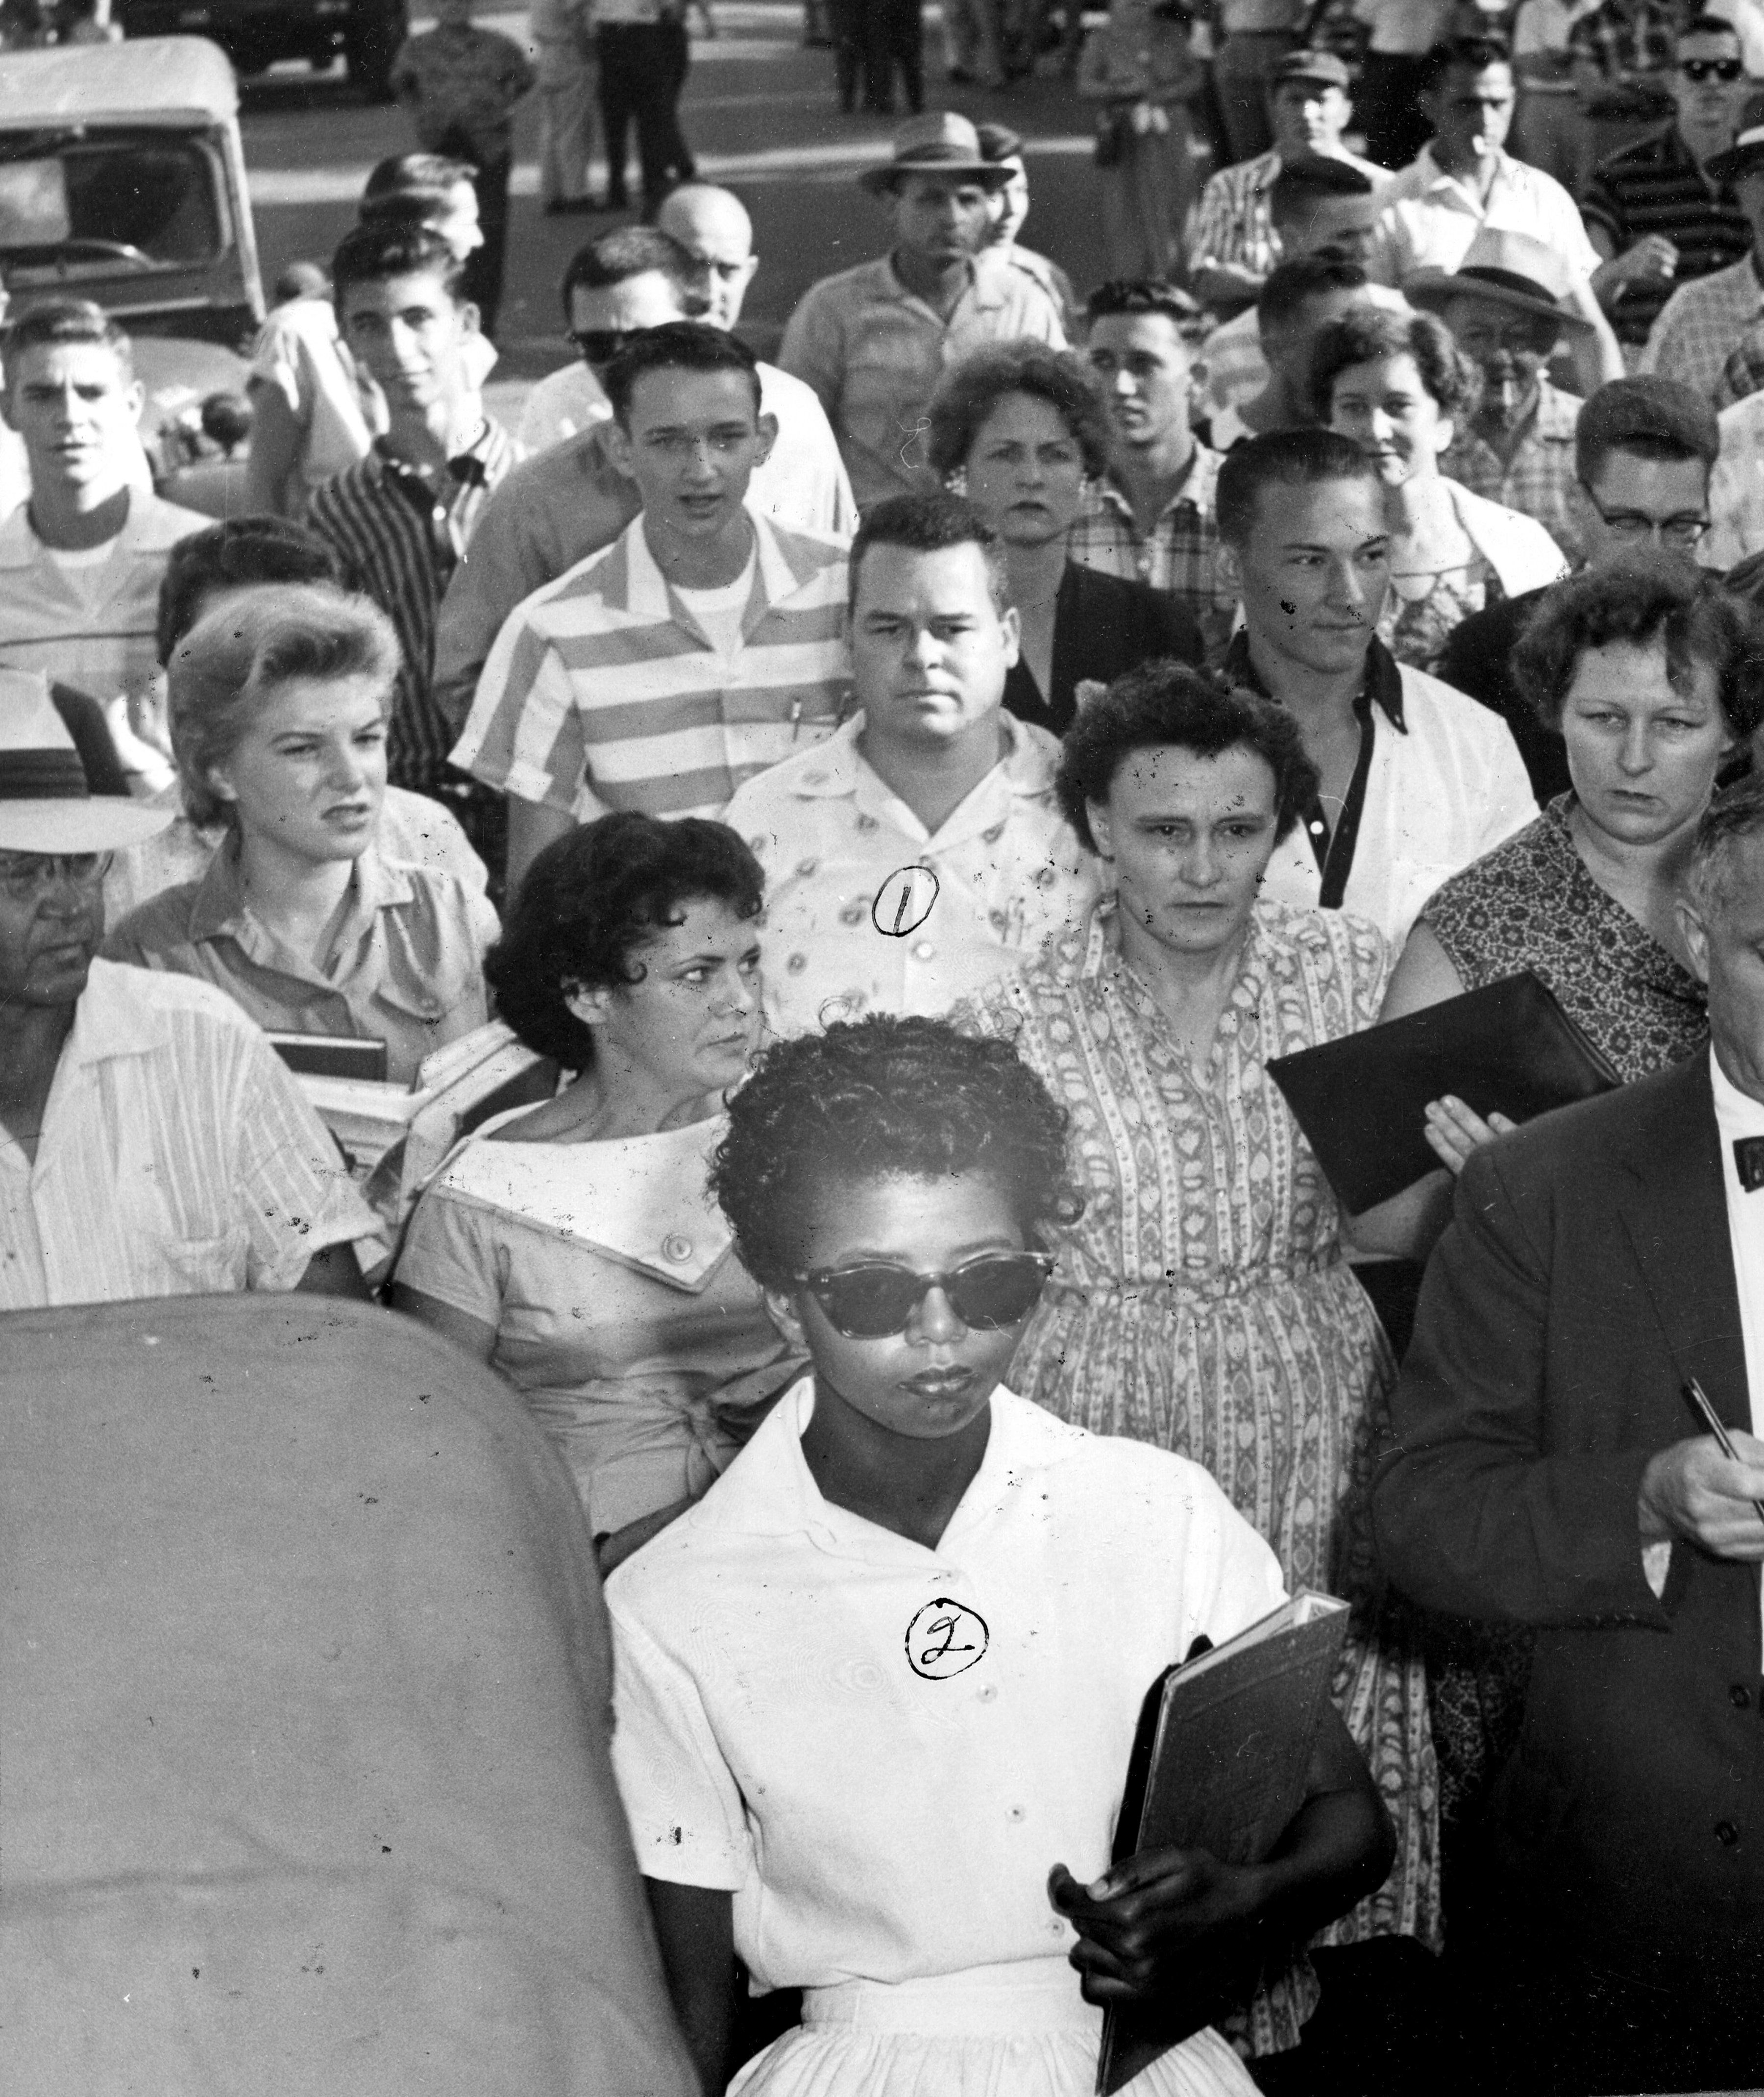 The Little Rock Nine attempt to integrate Central High School over the opposition of Gov. Orval Faubus